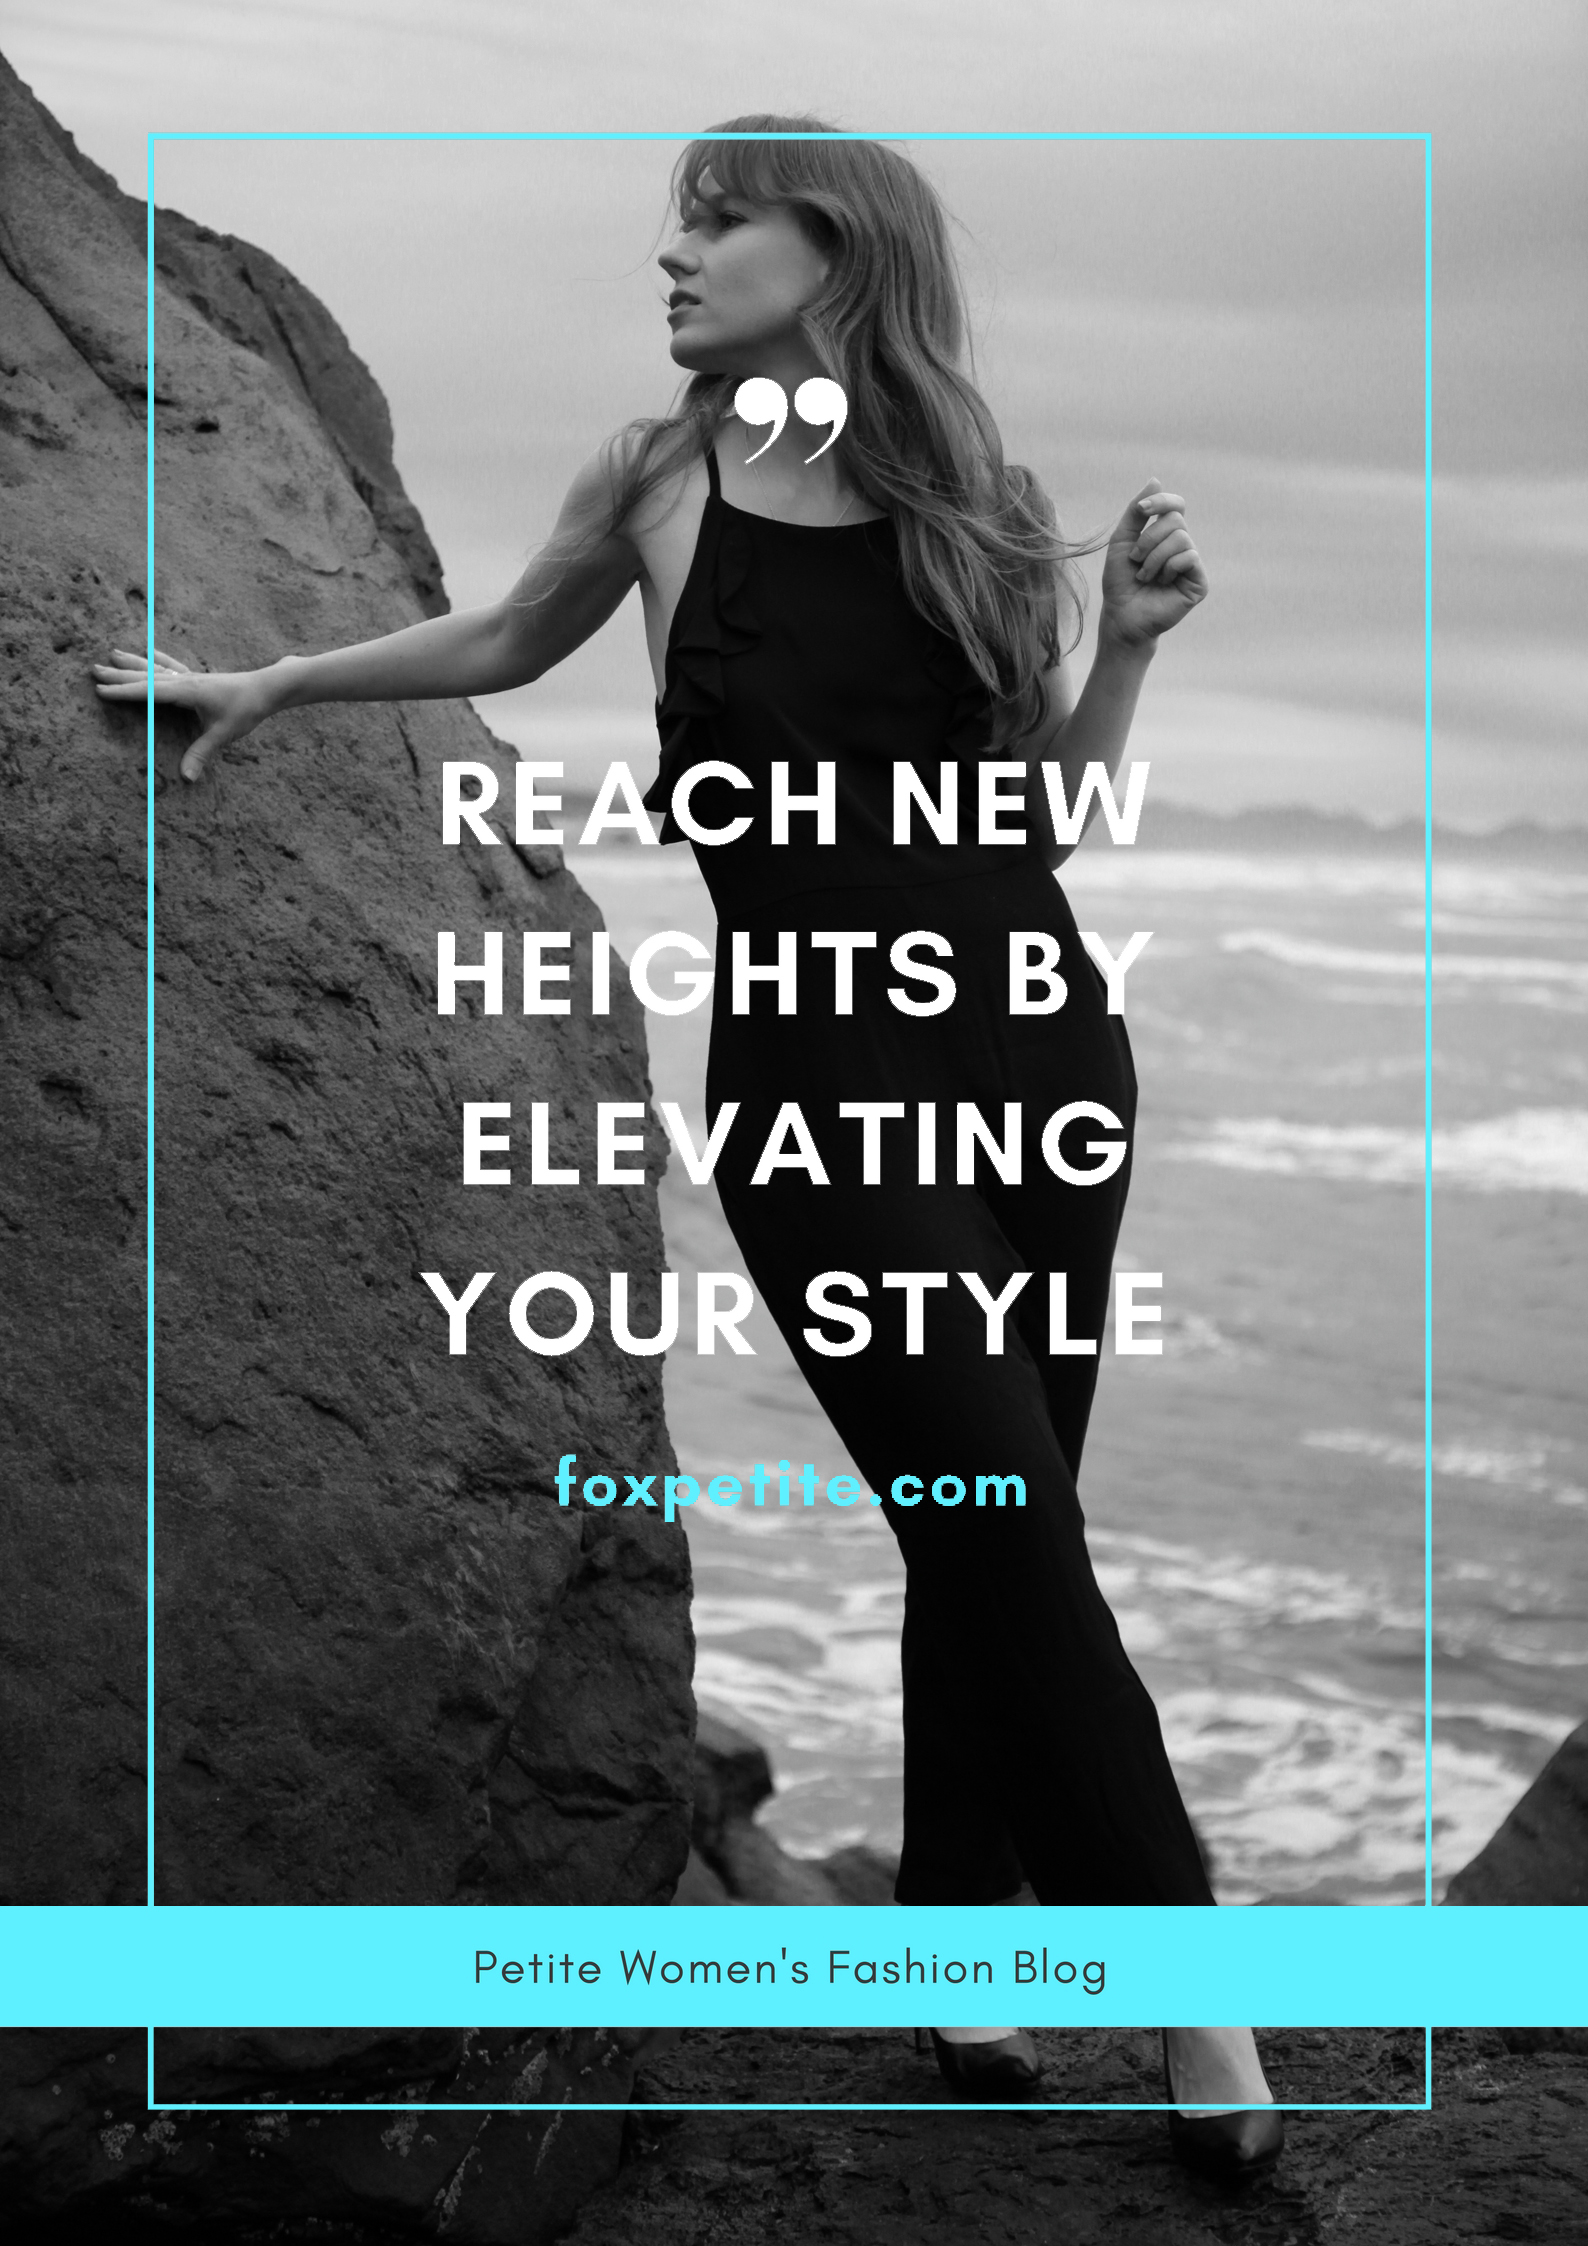 Fox Petite Quote - Reach New Heights By Elevating Your Style